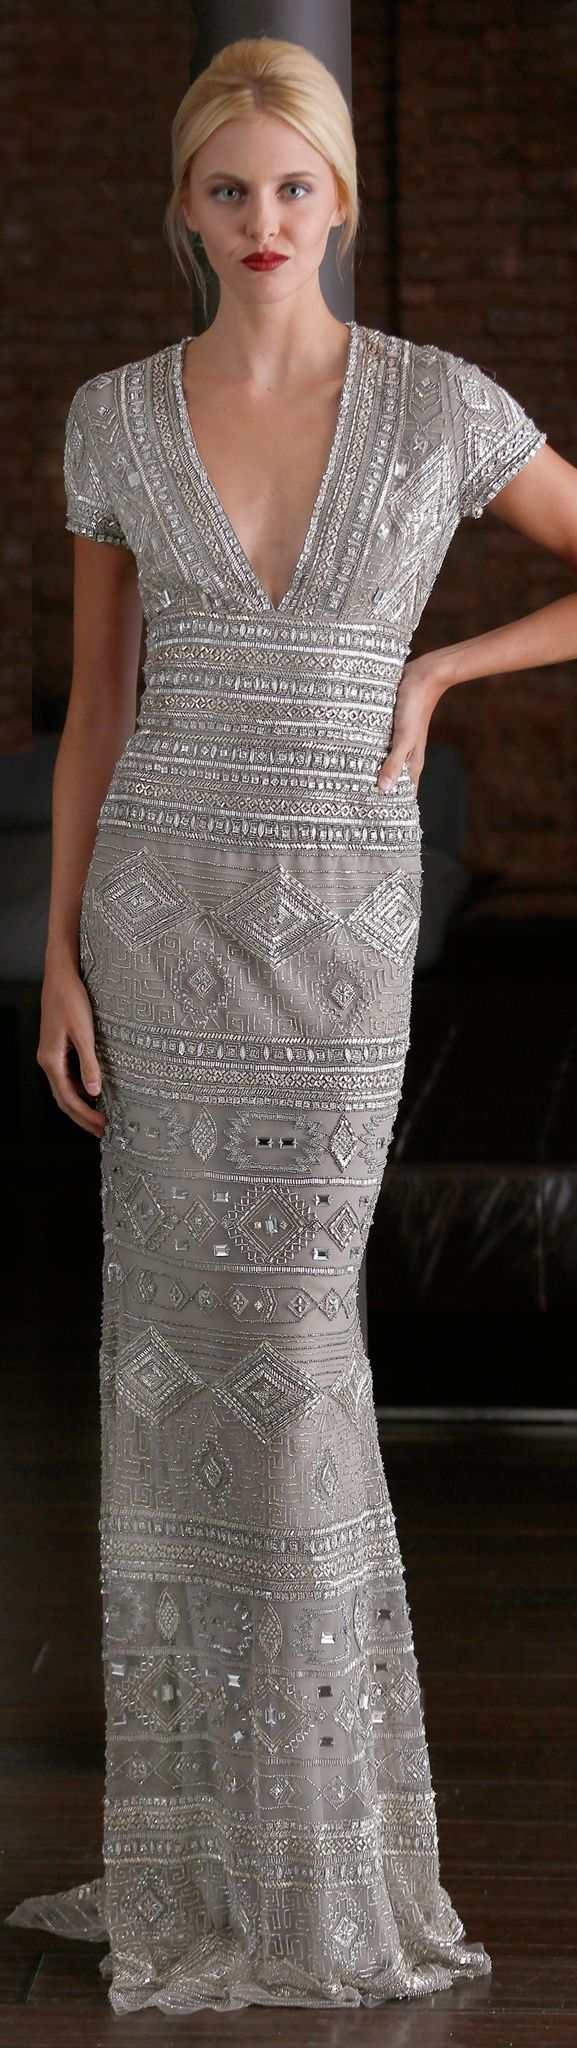 Holly what do you recon? Too far out the box? I need feedback to know I'm posting useful stuff... Naeem Khan Resort 2015